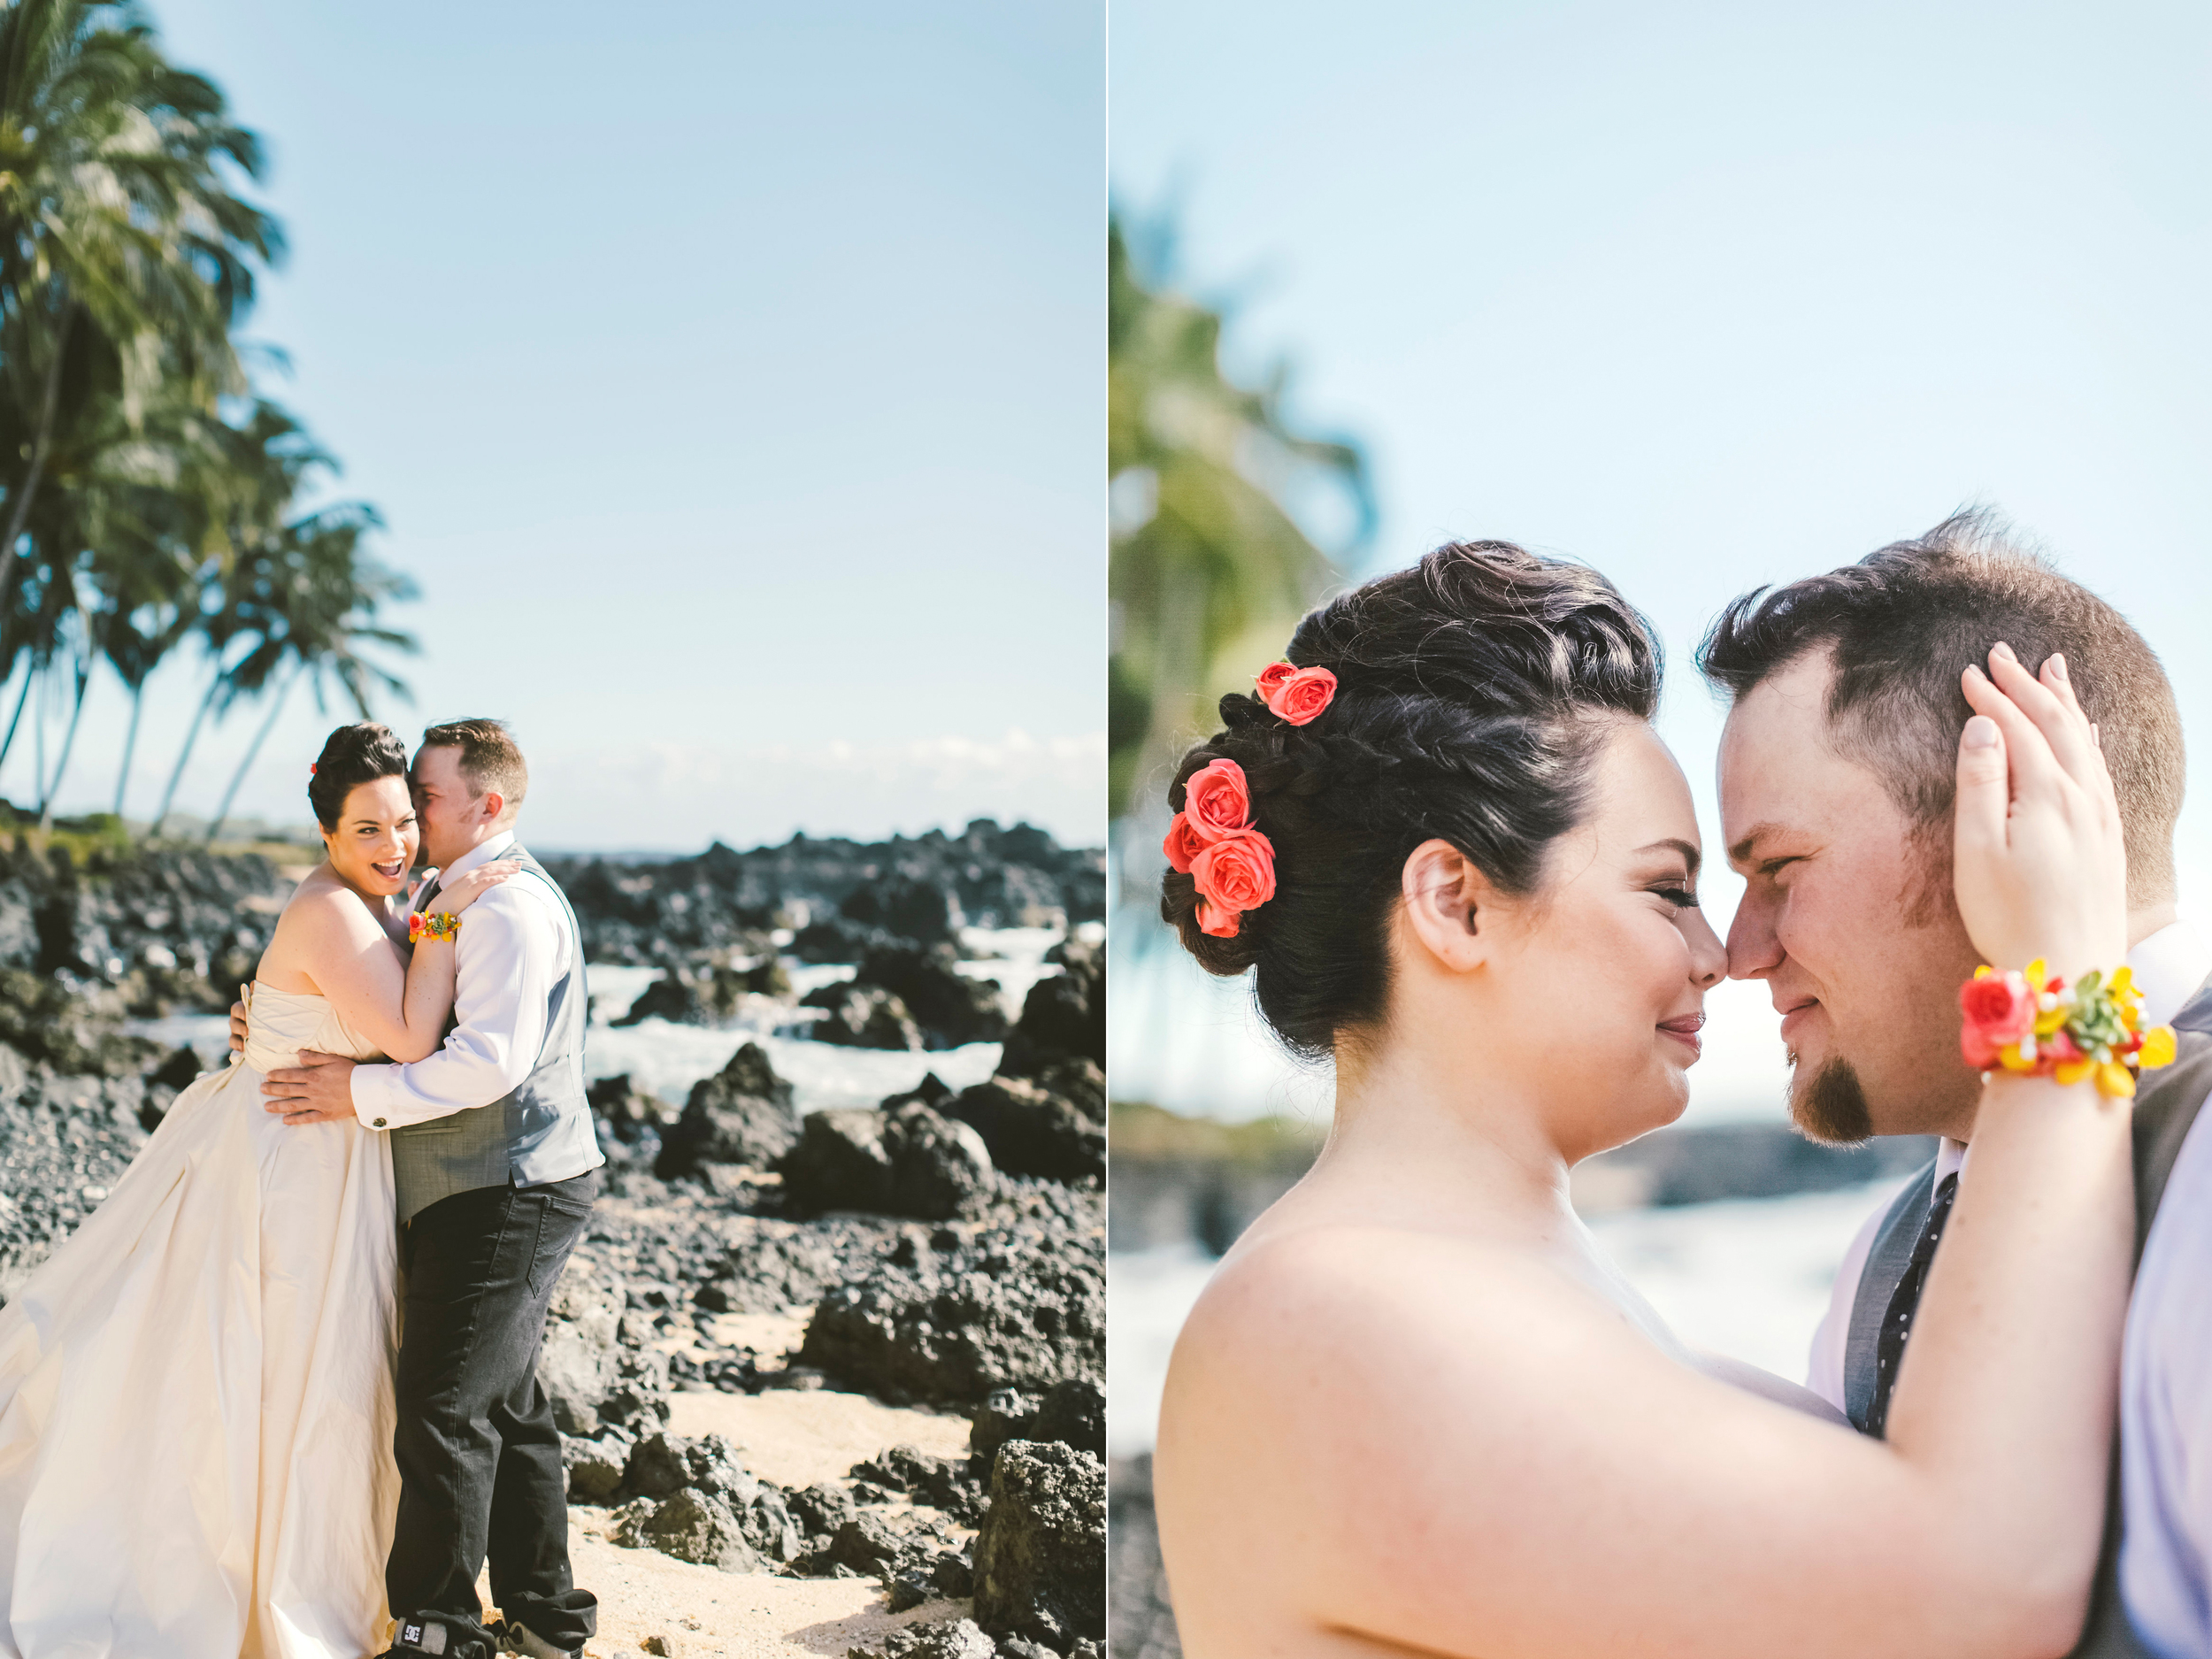 angie-diaz-photography-maui-elopement-30.jpg